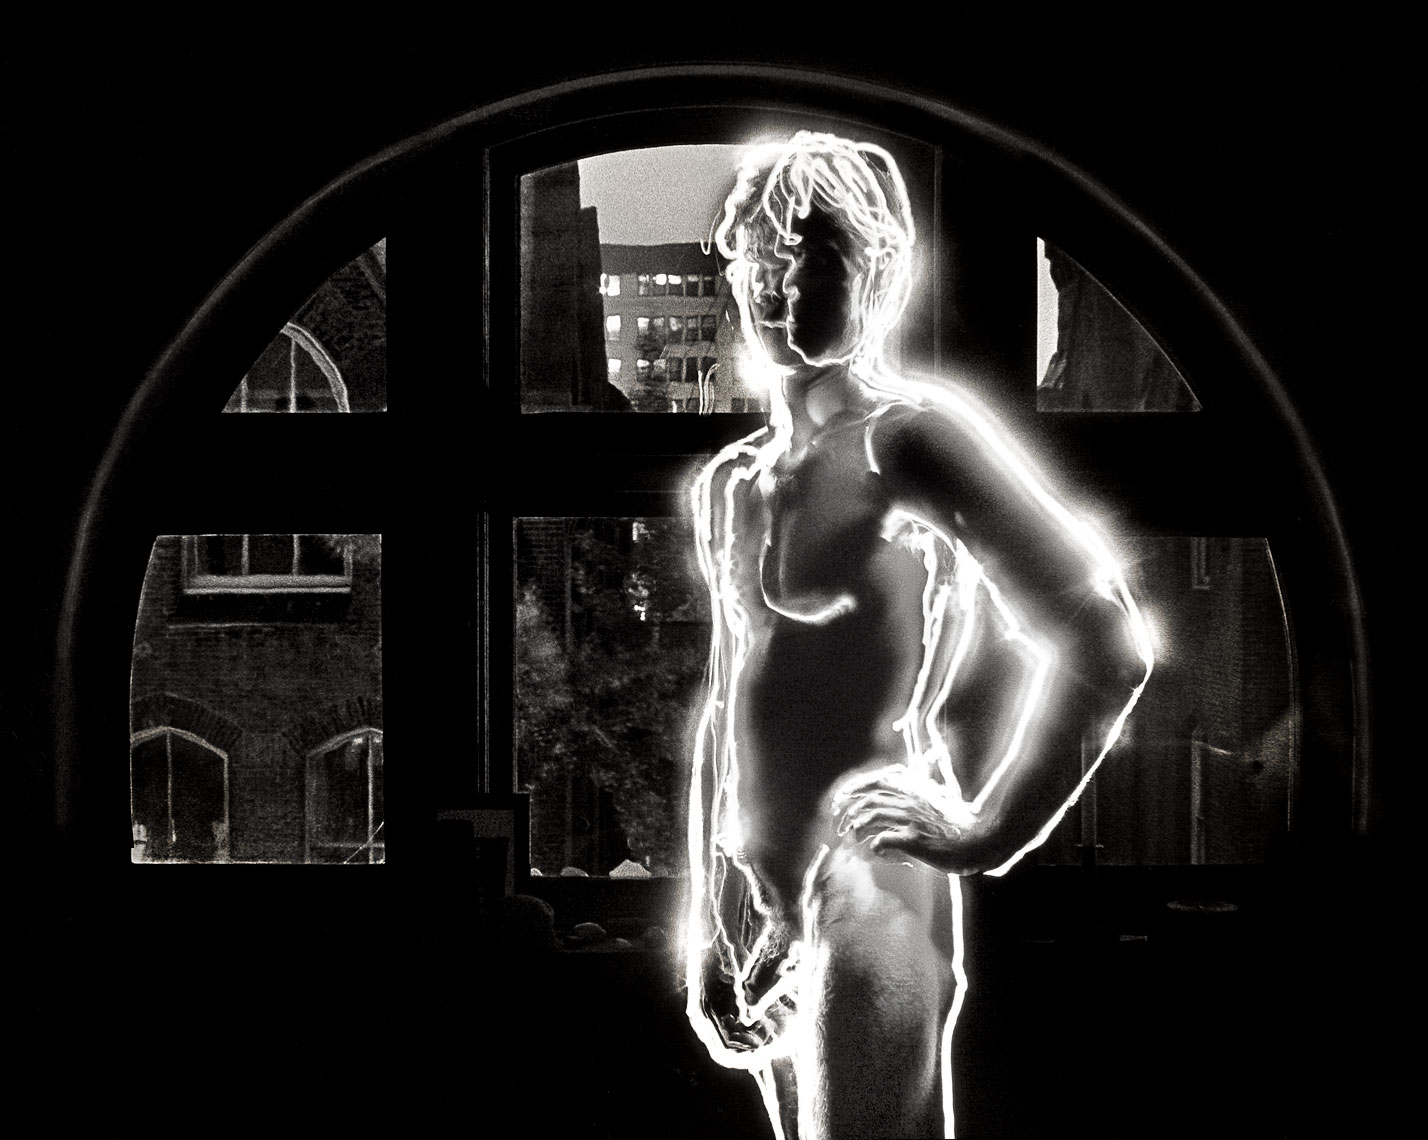 Wayne-at-the-Window-1980-V2-male nude, light drawing, black and white photograph